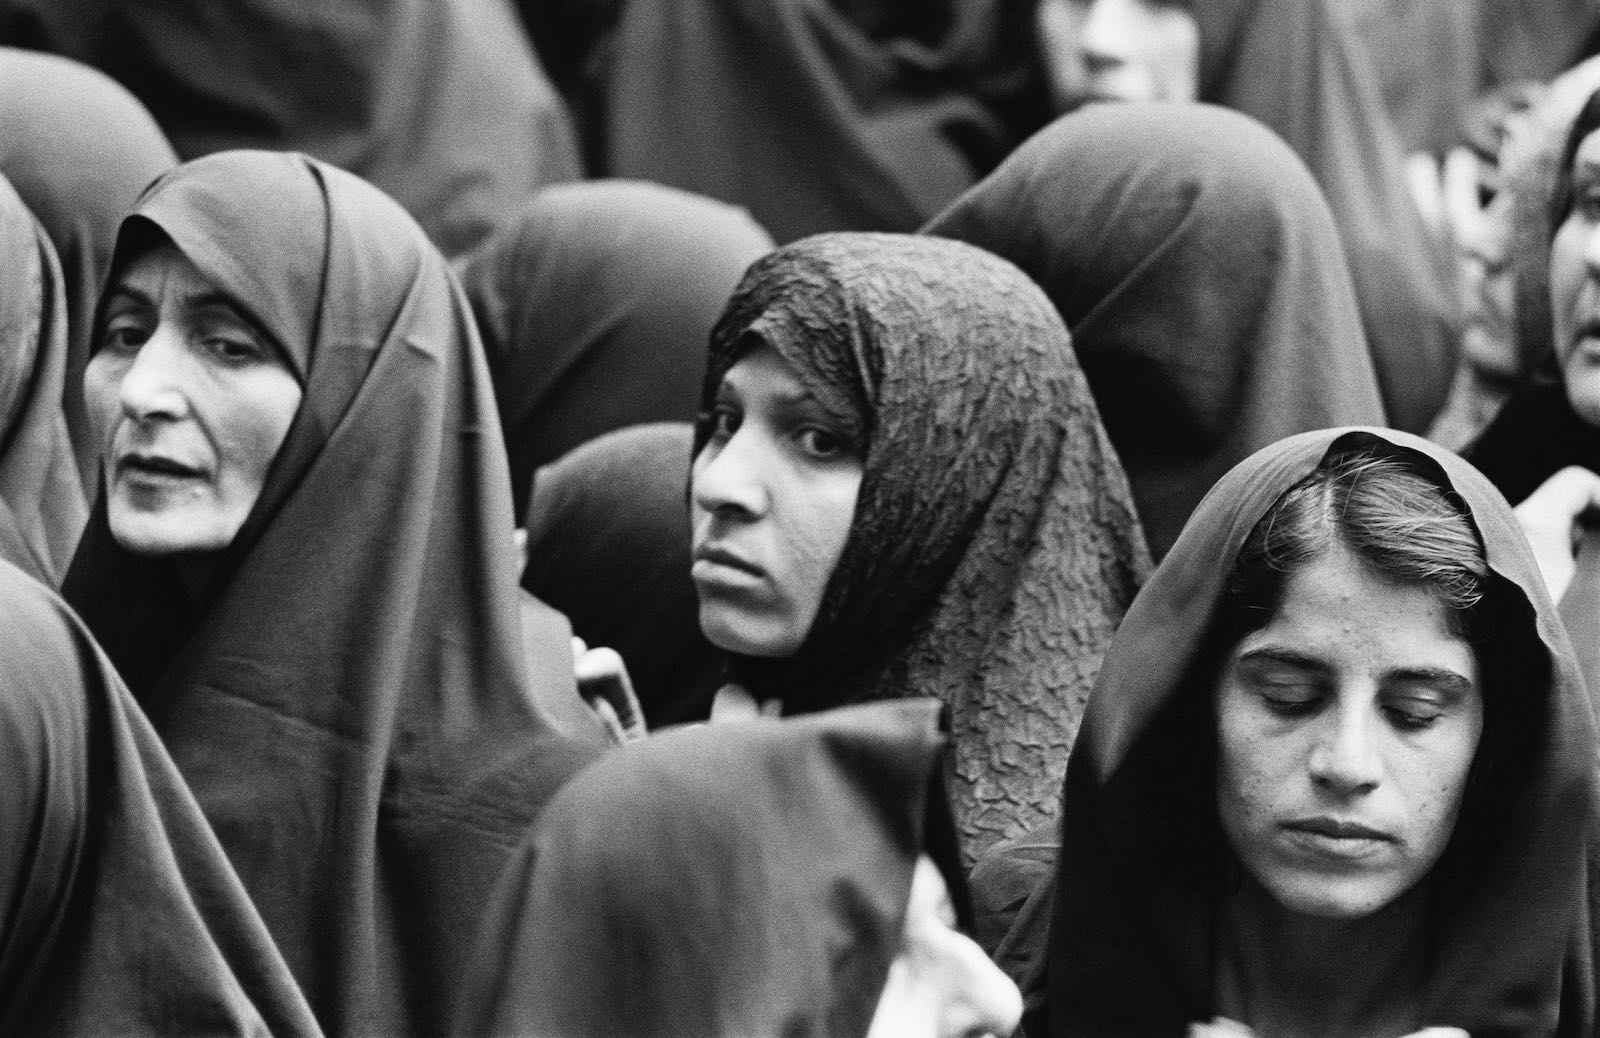 Iranian women during the Islamic Revolution, 1979